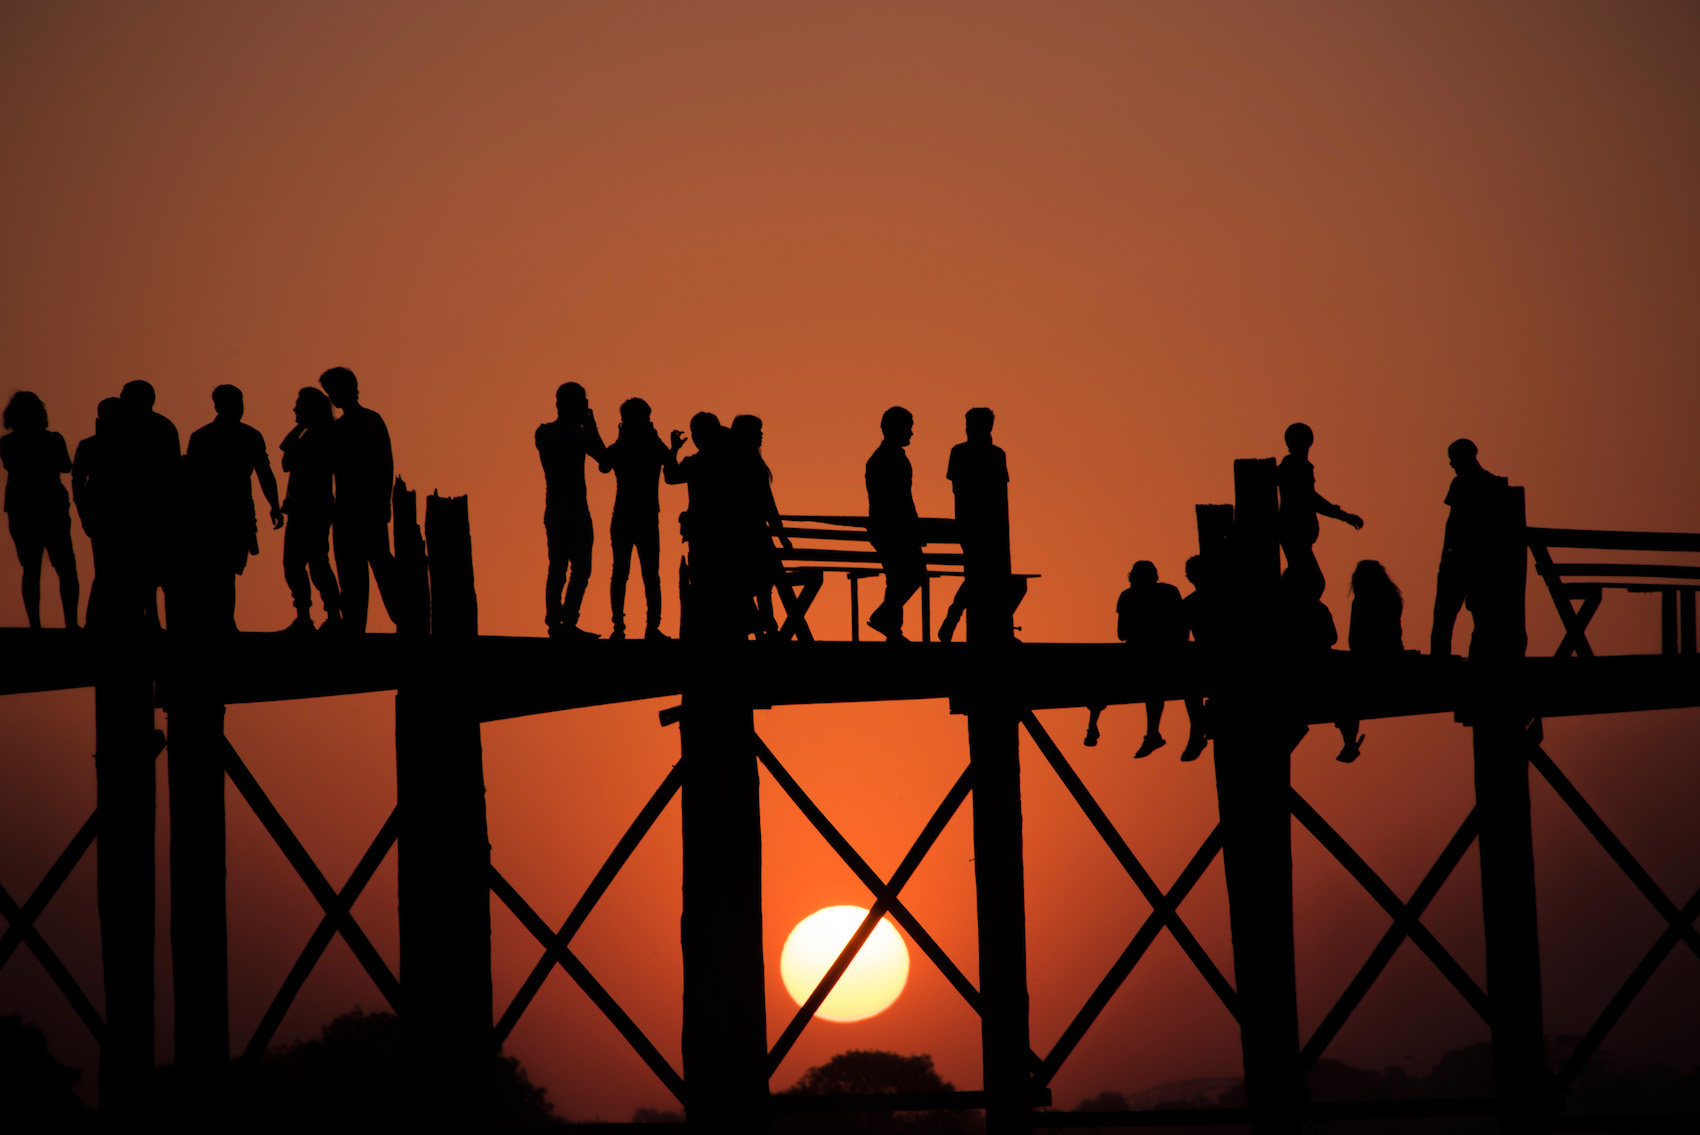 Sunset Over U-Bein Bridge in Amarapura, Myanmar